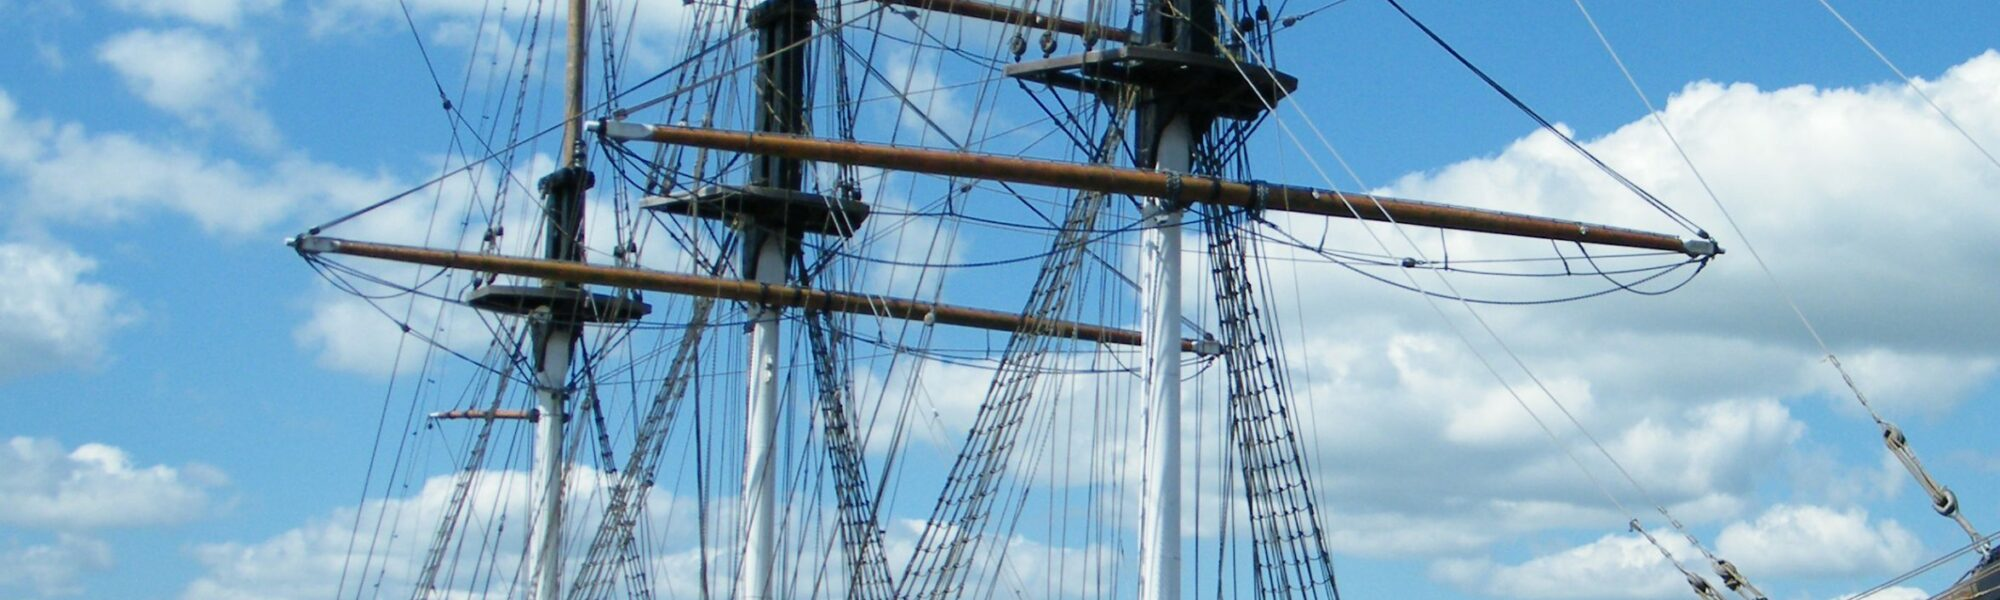 Le Dunbrody Famine Ship - Marianne Southall - cc